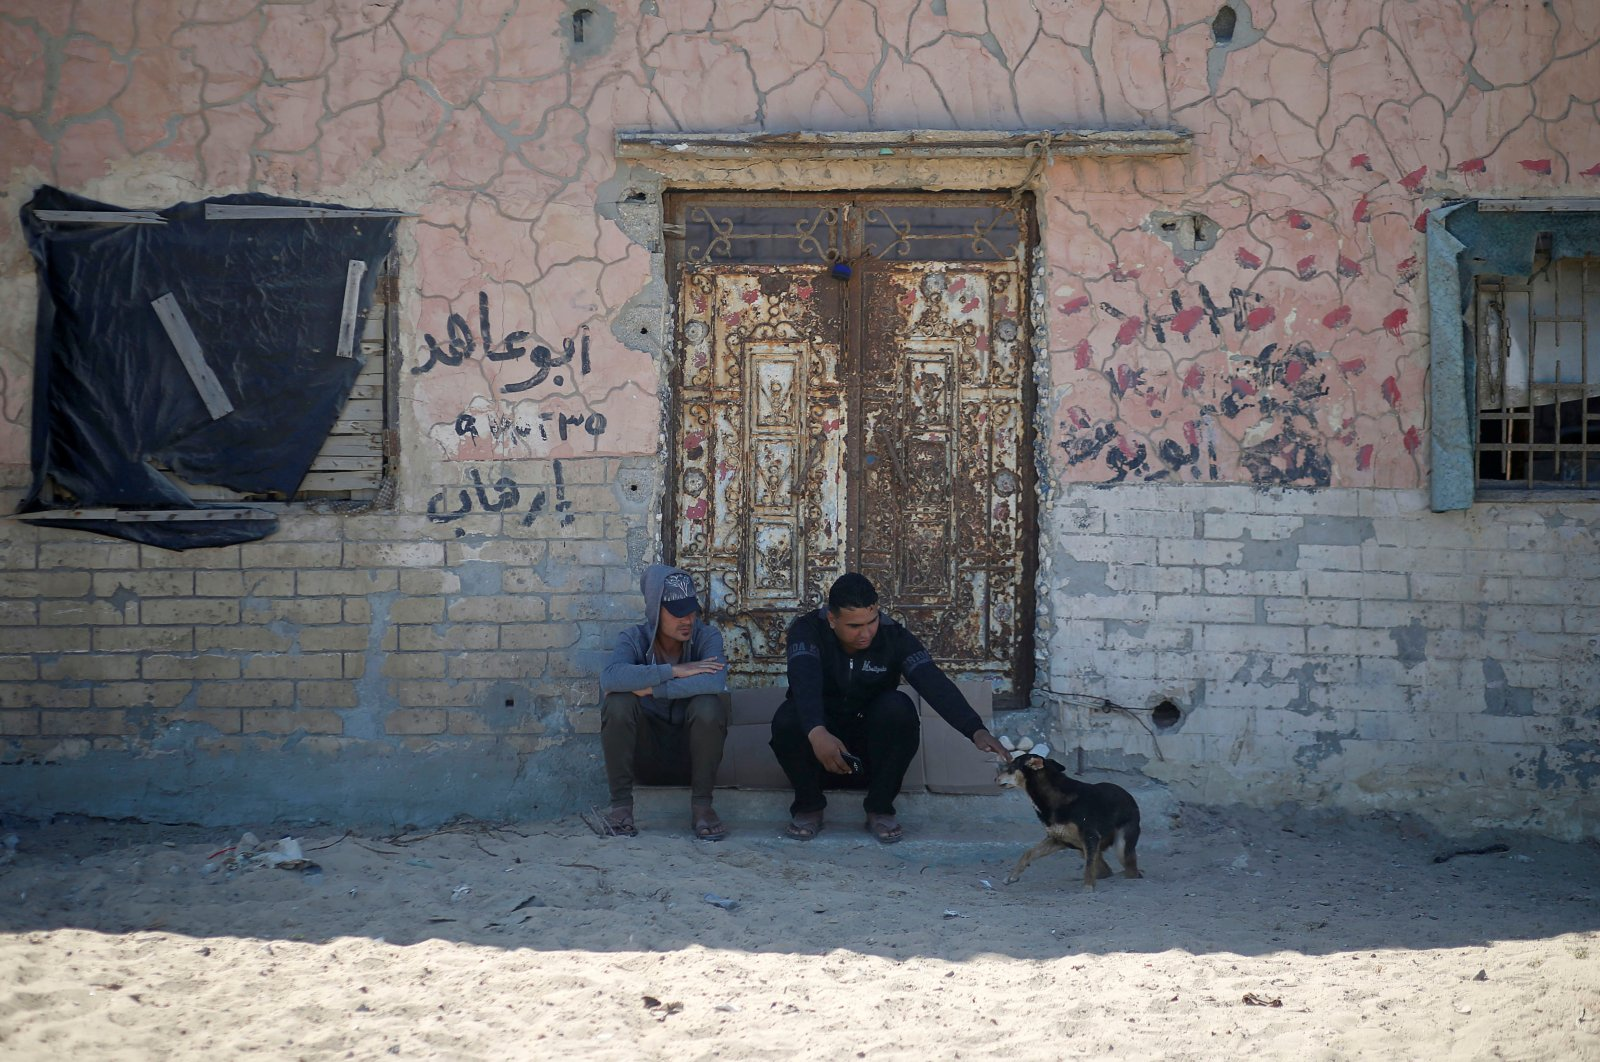 A man sitting on the doorstep of a house plays with a dog at Beach refugee camp, Gaza City, May 30, 2020. (REUTERS Photo)